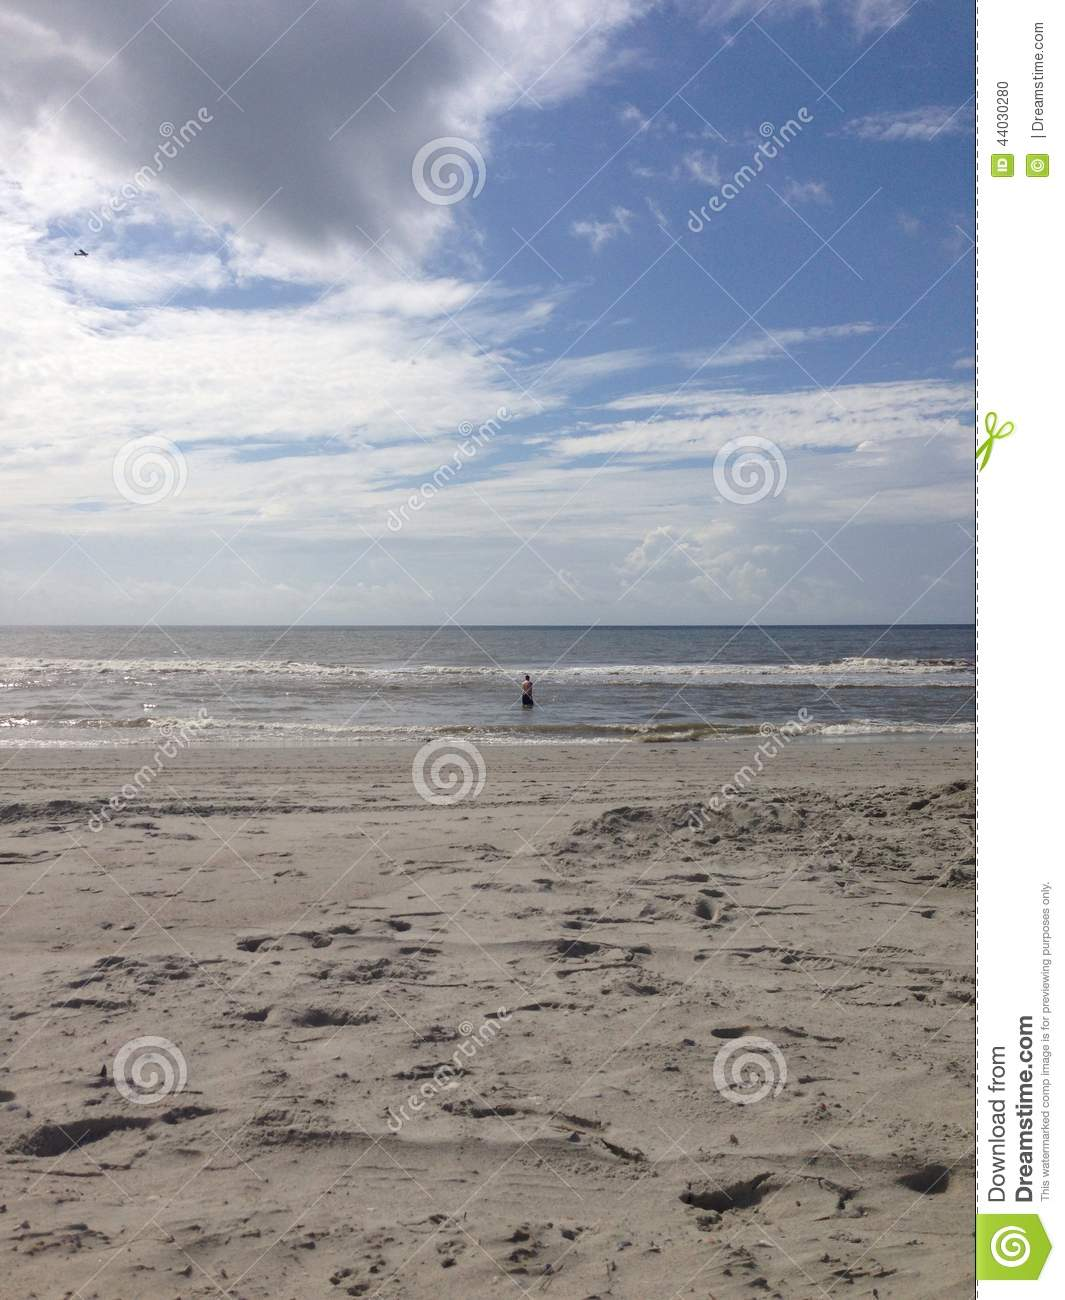 Beautiful Sunny Day At Tropical Beach Royalty Free Stock: Beach Day Stock Photo. Image Of Sunny, Beach, Sand